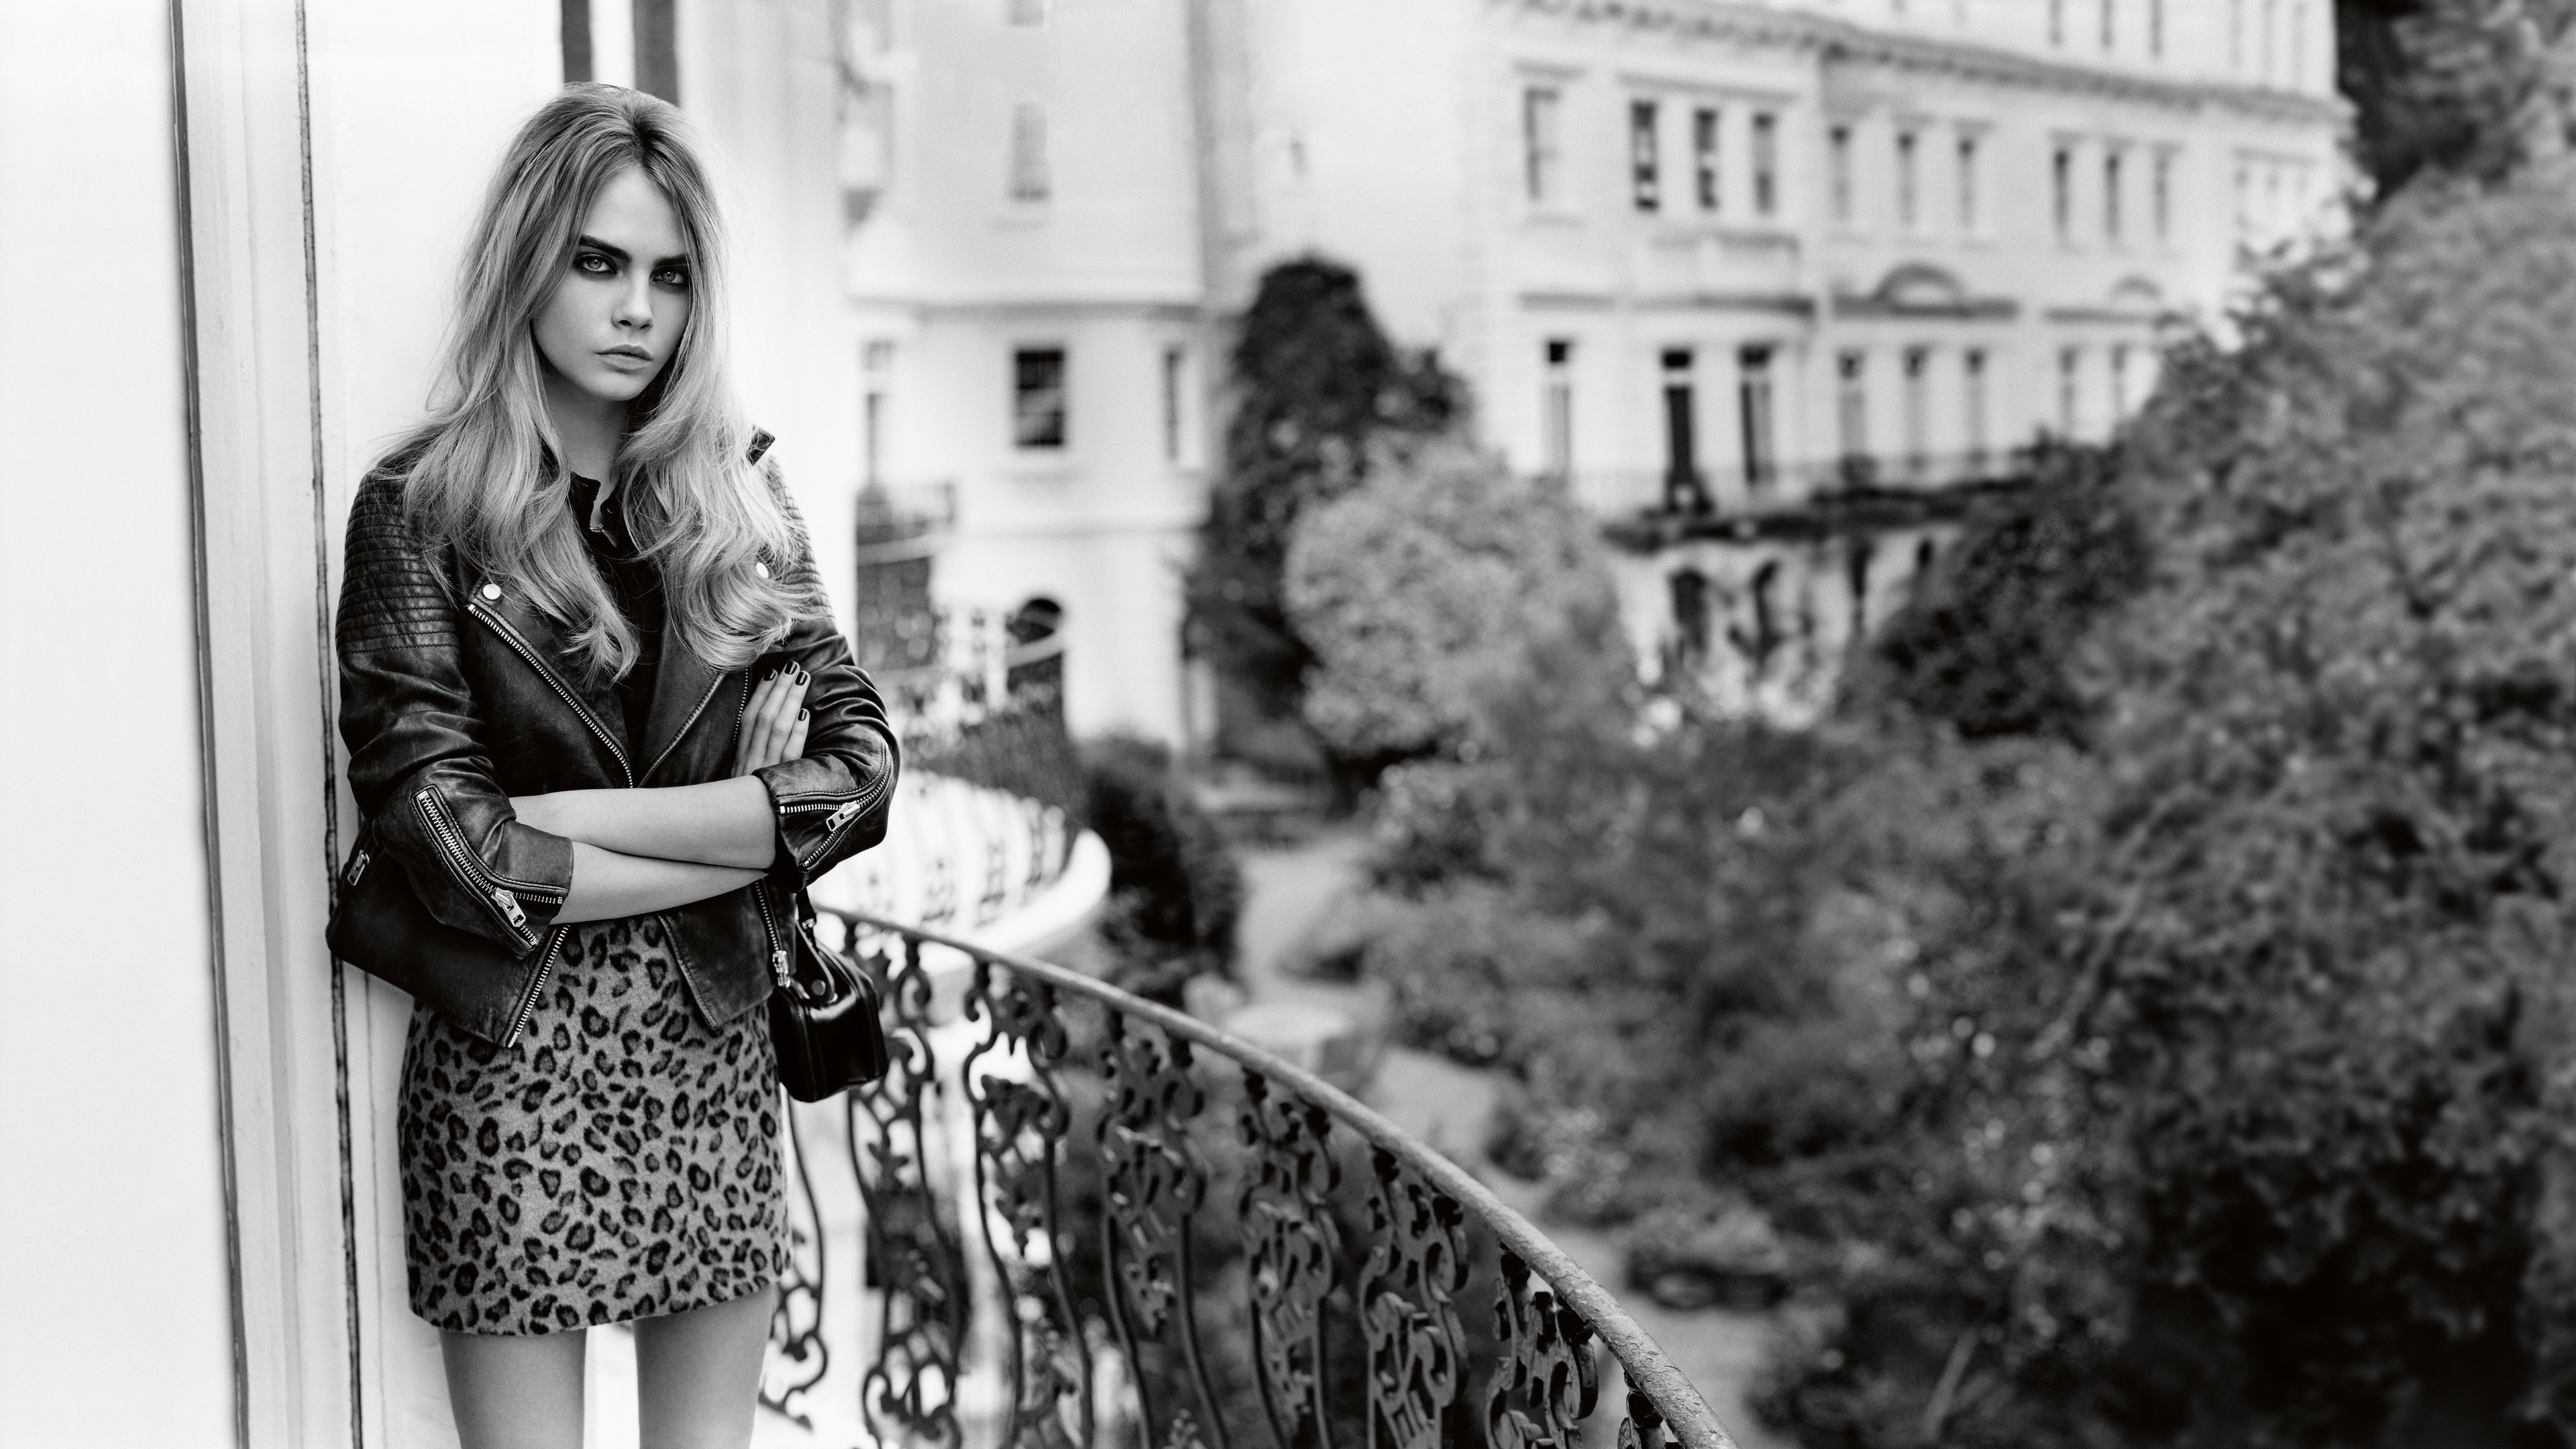 cara delevingne hd 1536856739 - Cara Delevingne HD - monochrome wallpapers, model wallpapers, girls wallpapers, celebrities wallpapers, cara delevingne wallpapers, black and white wallpapers